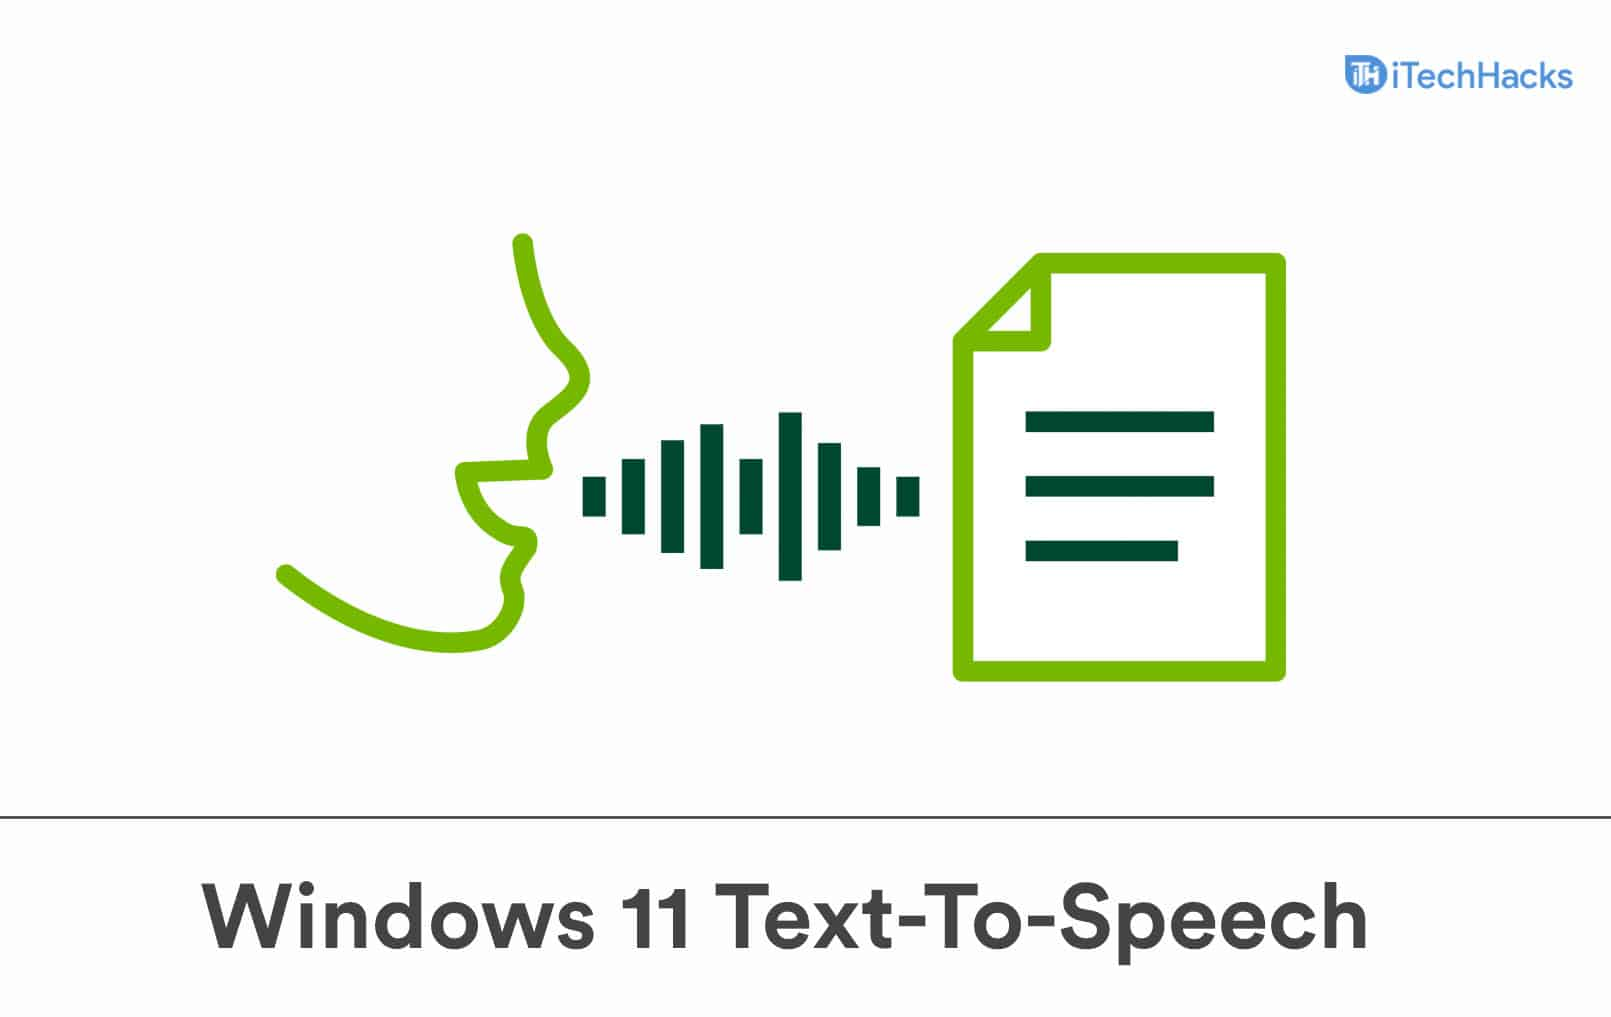 How To Enable Windows 11 Text-To-Speech Voice Typing